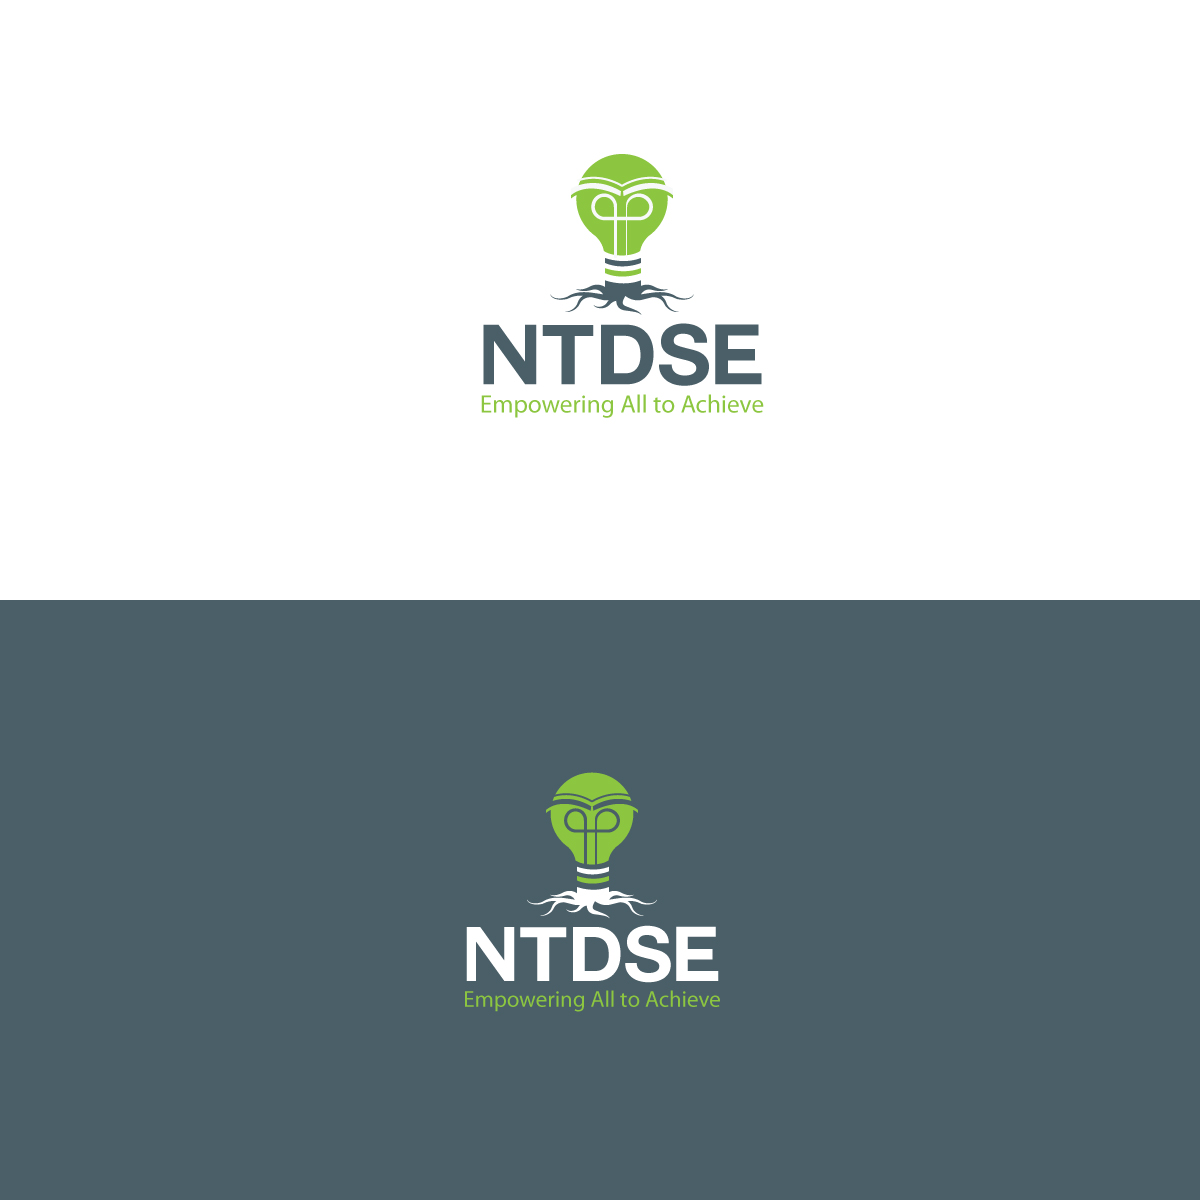 Bold Playful Logo Design For Ntdse Empowering All To Achieve By Brand Maker Design 21906284 ✓ free for commercial use ✓ high quality images. designcrowd